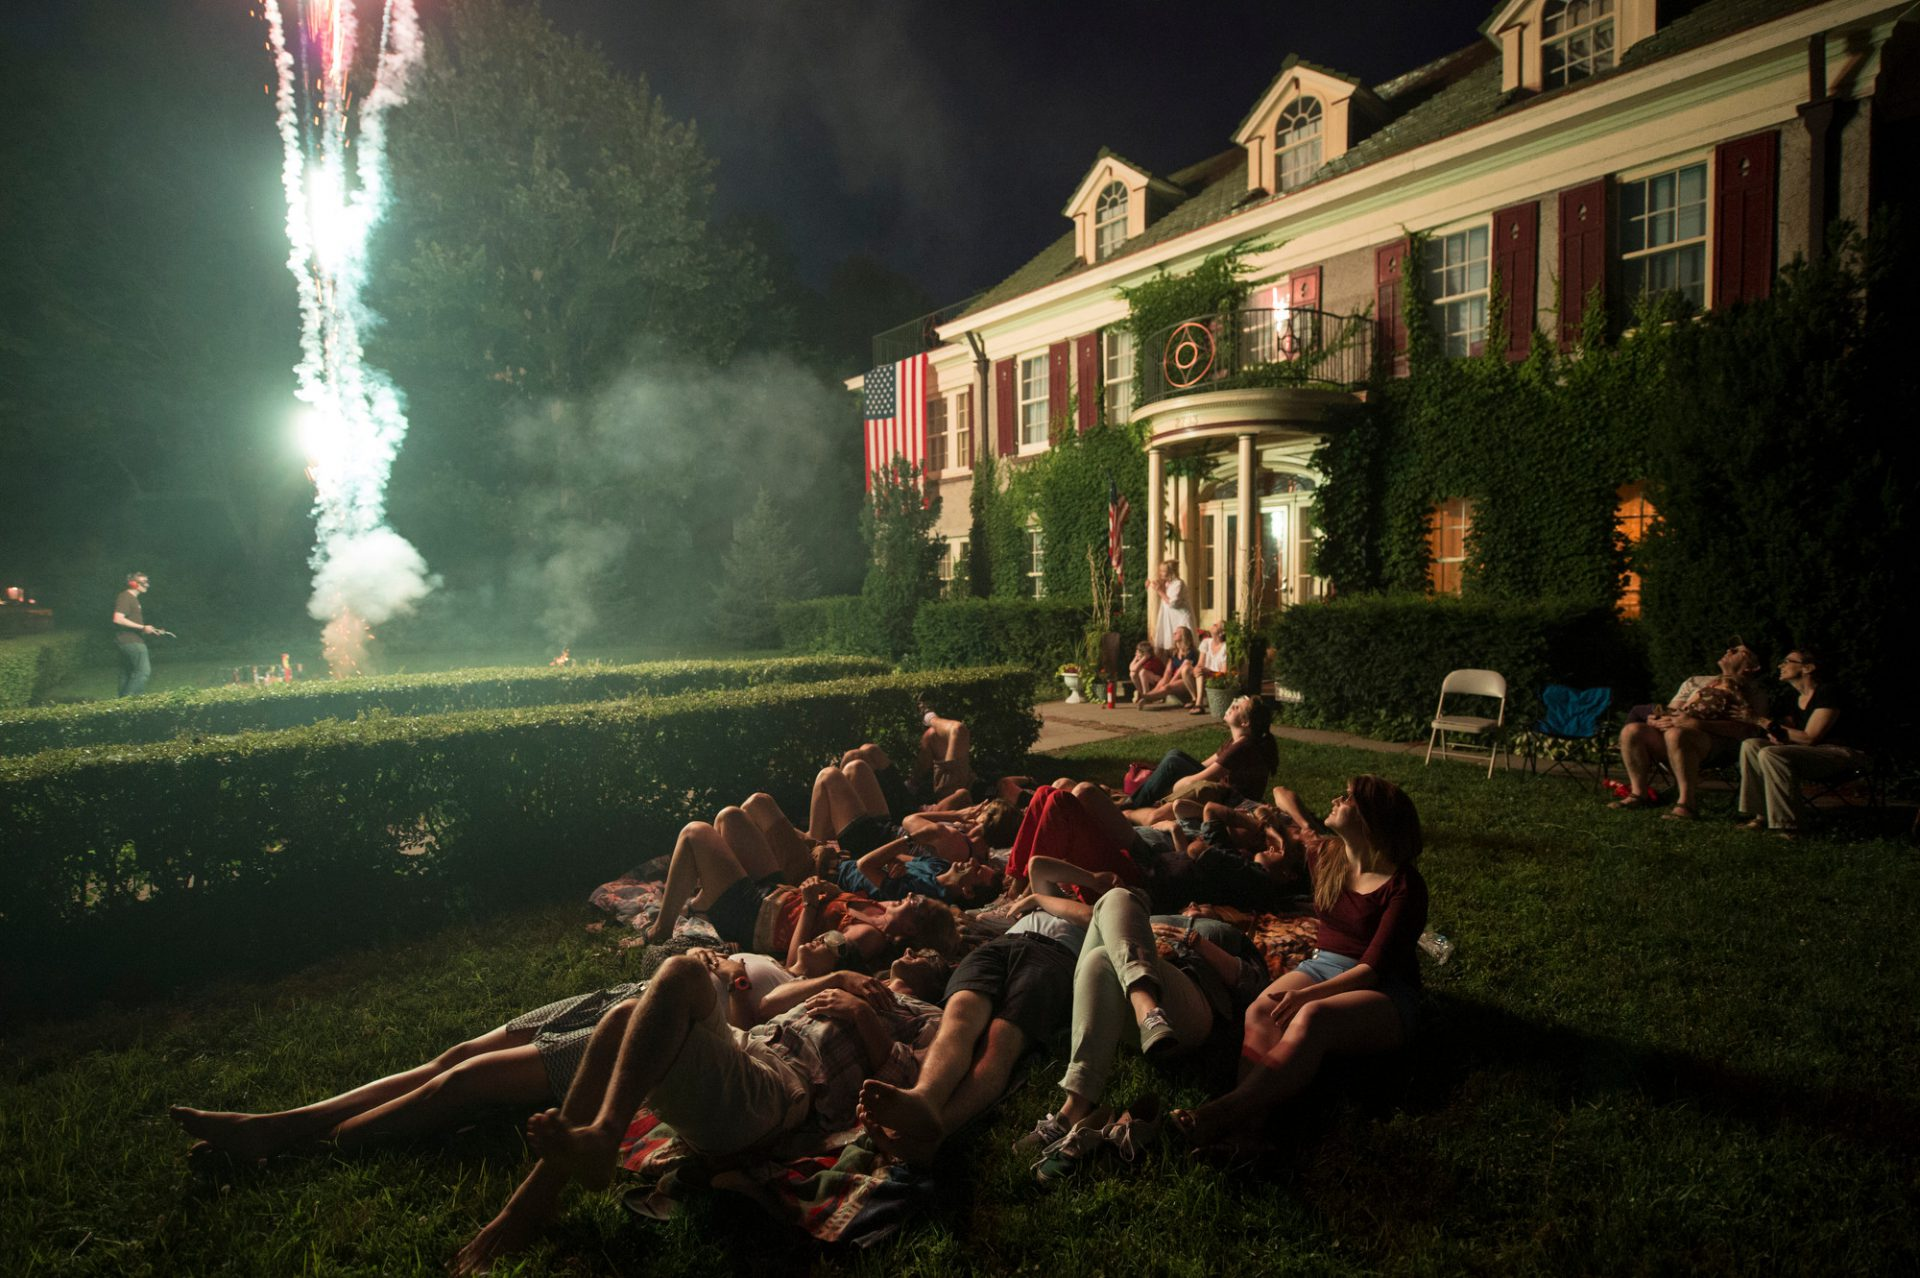 Photo: A group of people gather to watch fireworks and celebrate the Fourth of July in Lincoln, Nebraska.